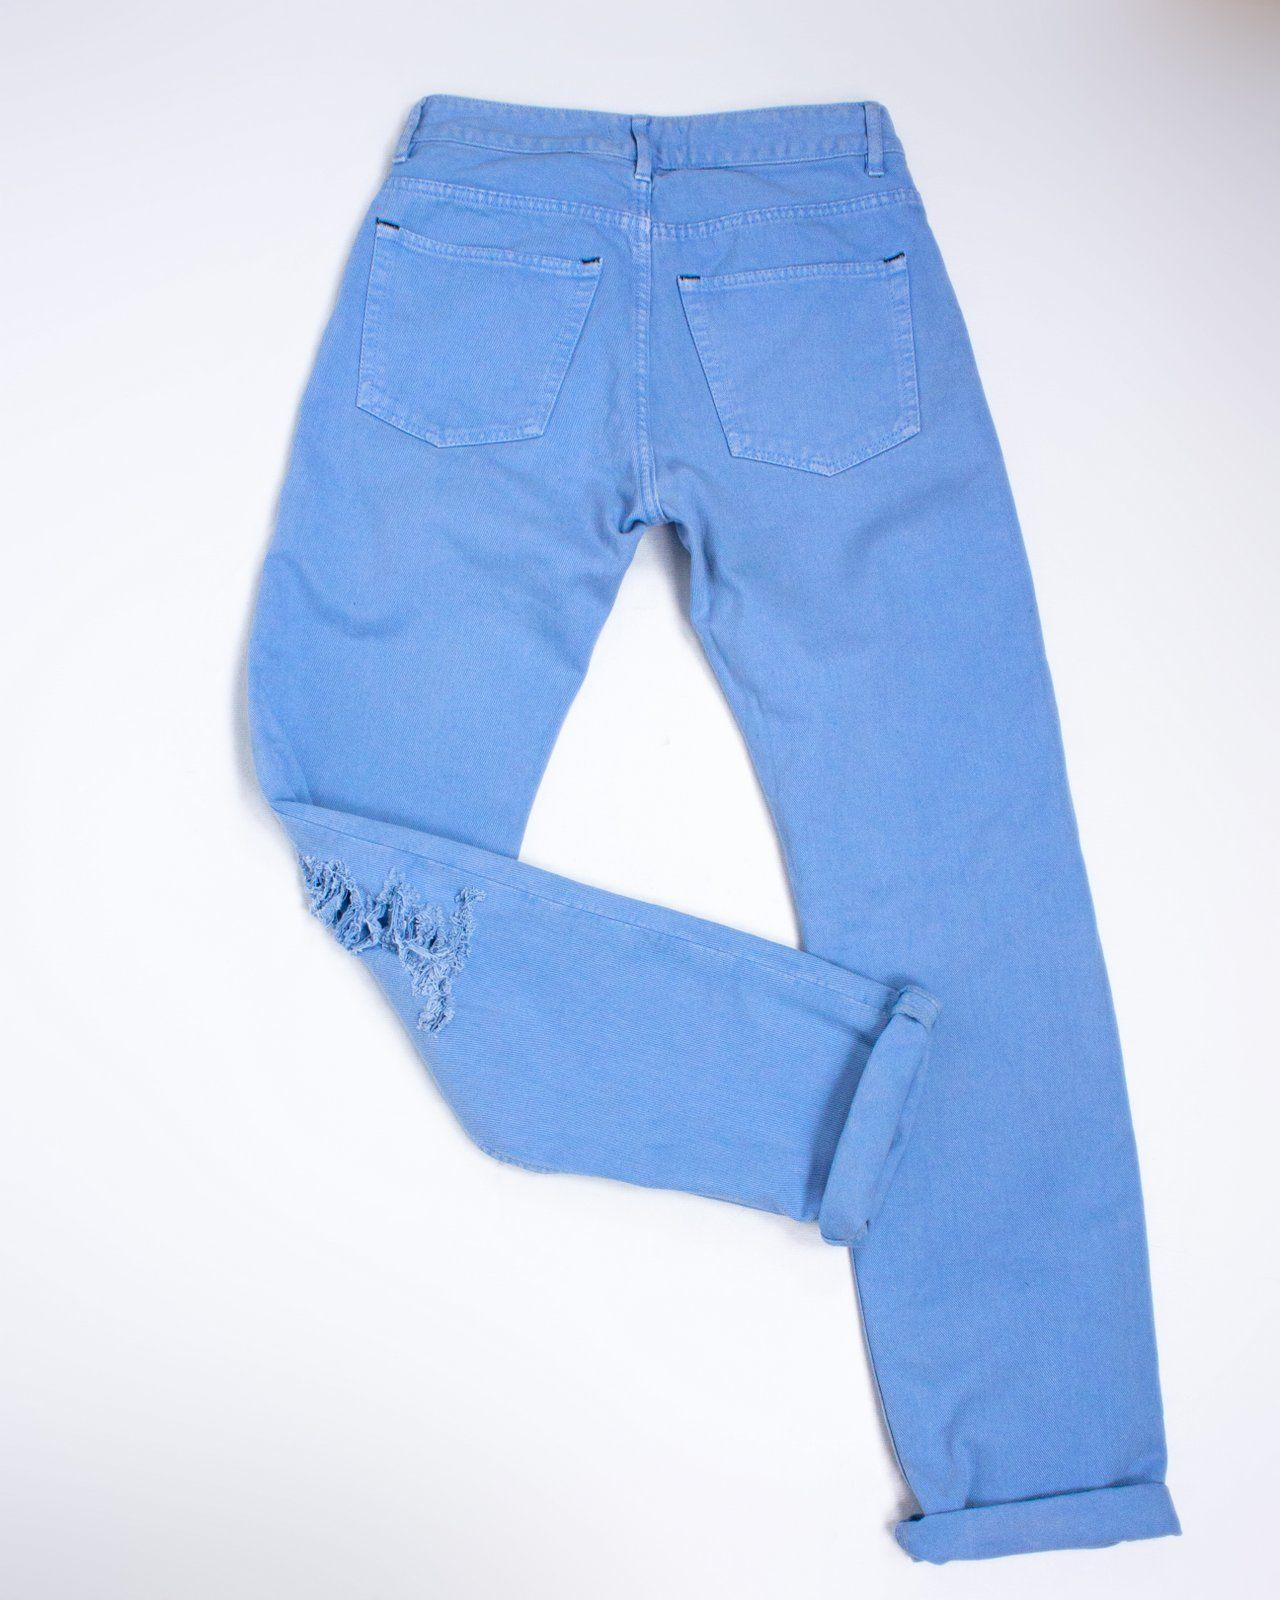 ACNE Boyfriend Ripped/ Destroyed Jeans, SIZE 27/32 - secondfirst